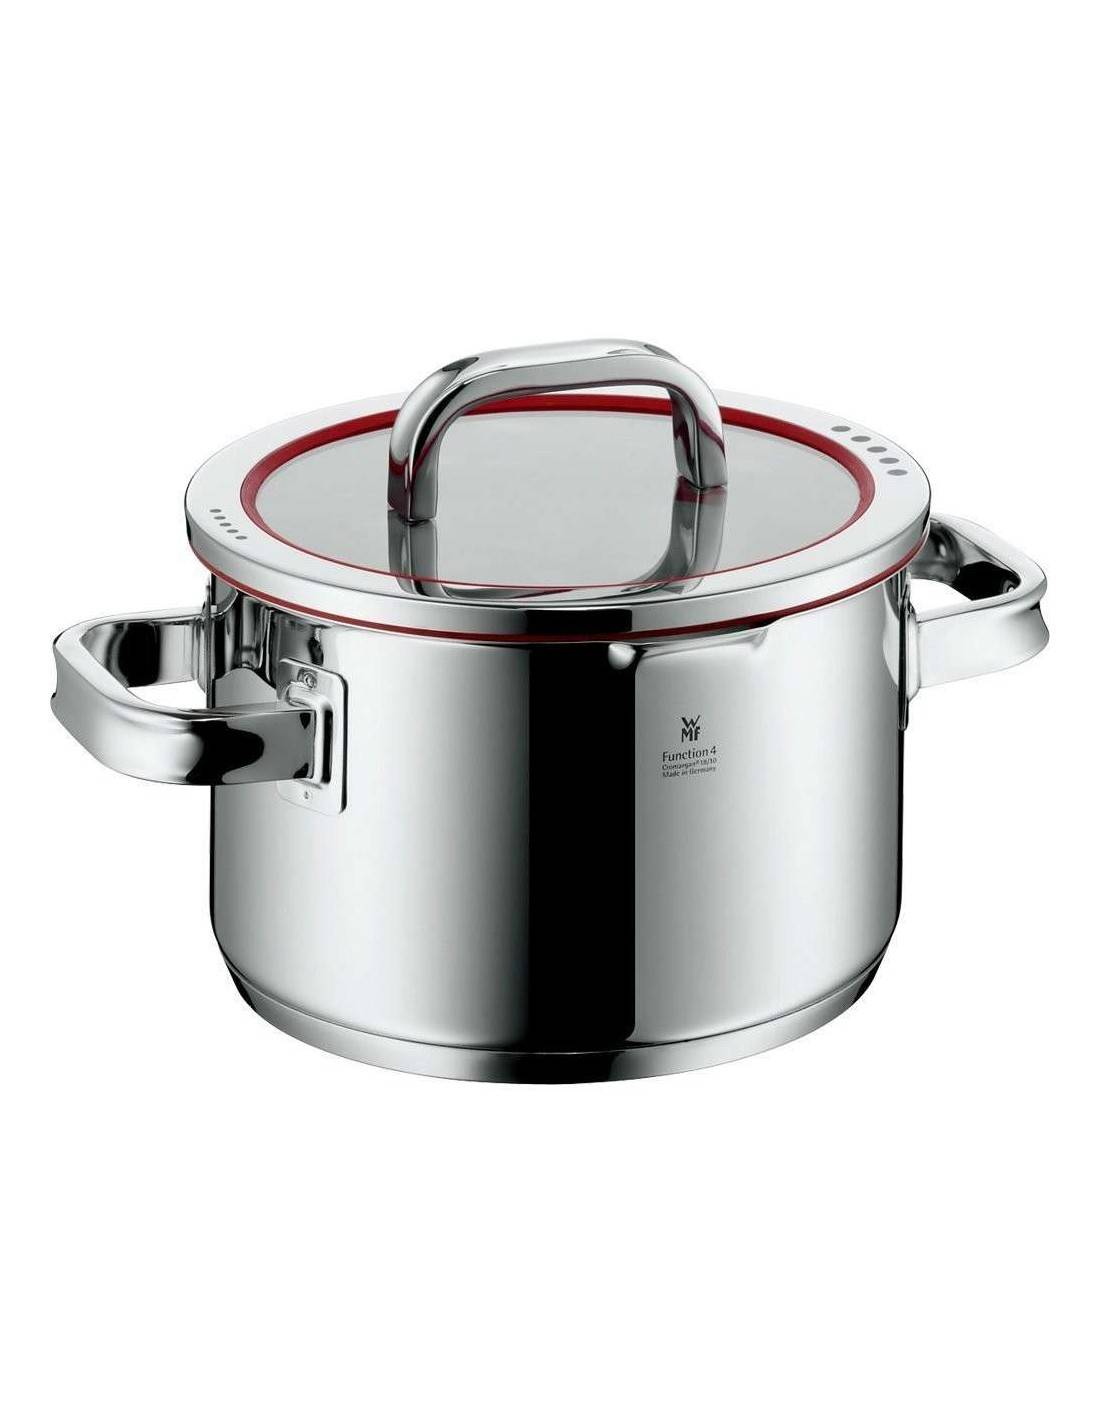 wmf function 4 stock pot with lid mimocook online store. Black Bedroom Furniture Sets. Home Design Ideas